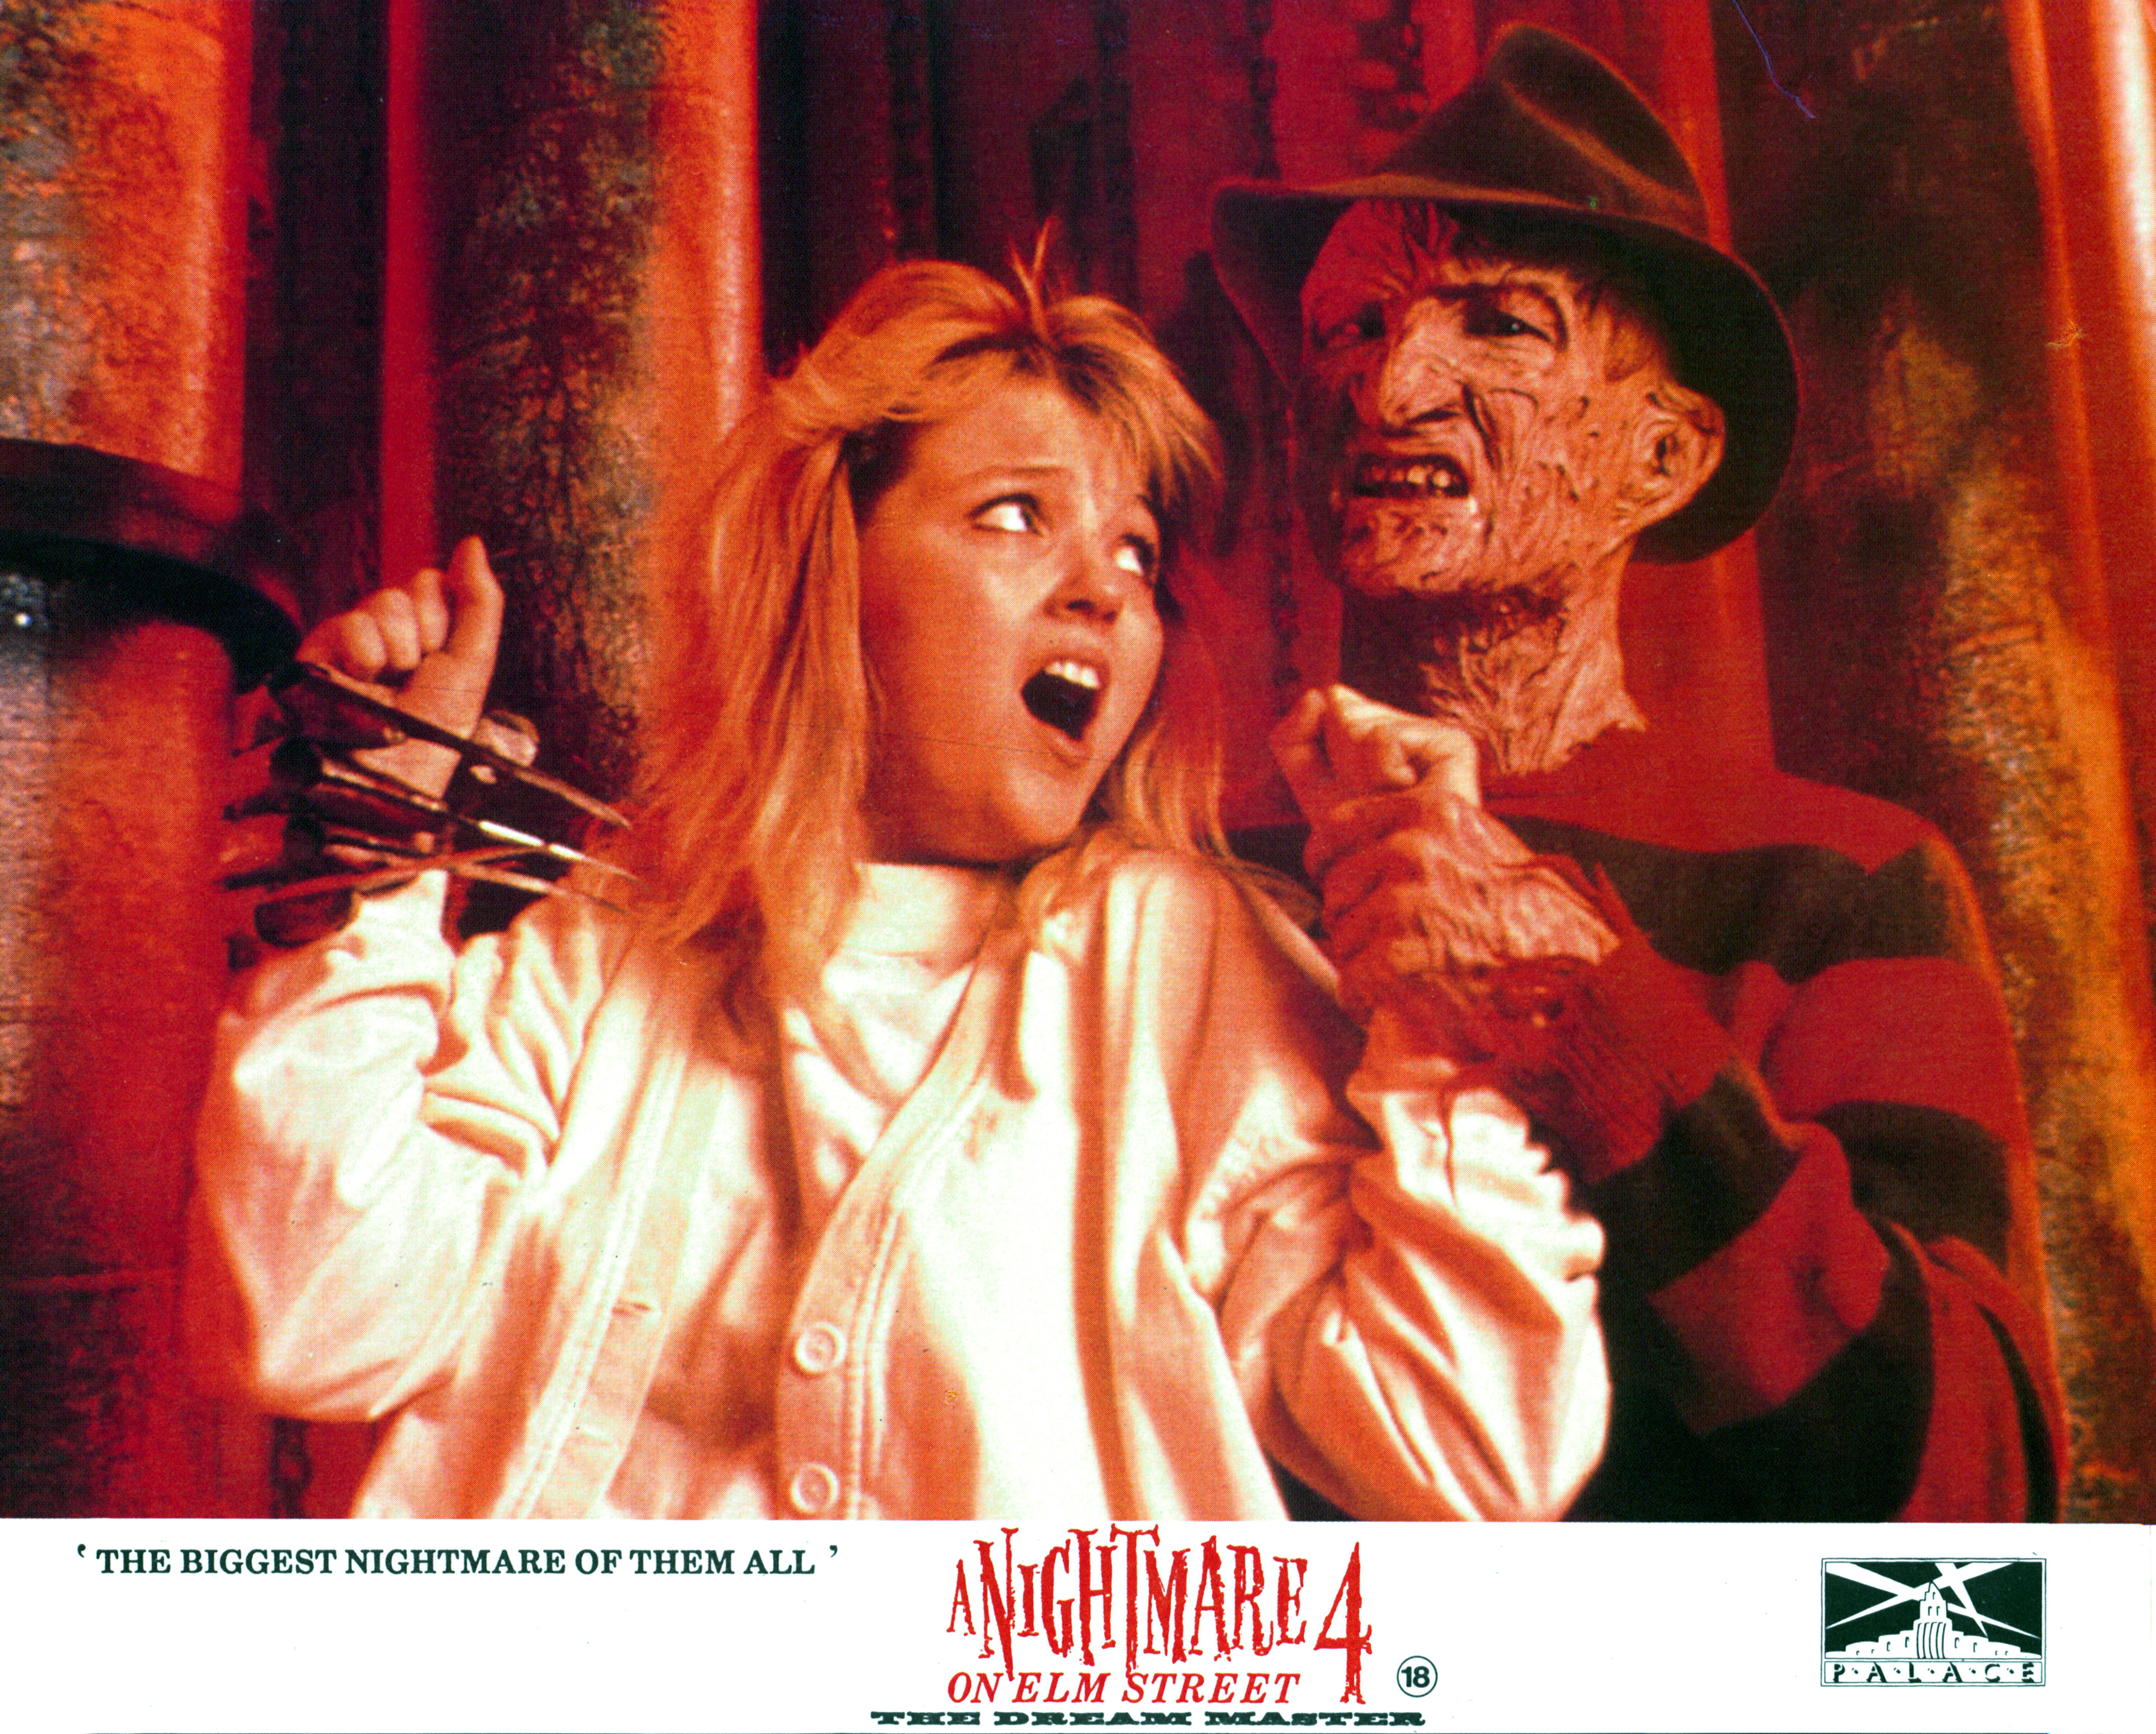 Tuesday Knight And Robert Englund In 'A Nightmare On Elm Street 4: The Dream Master'